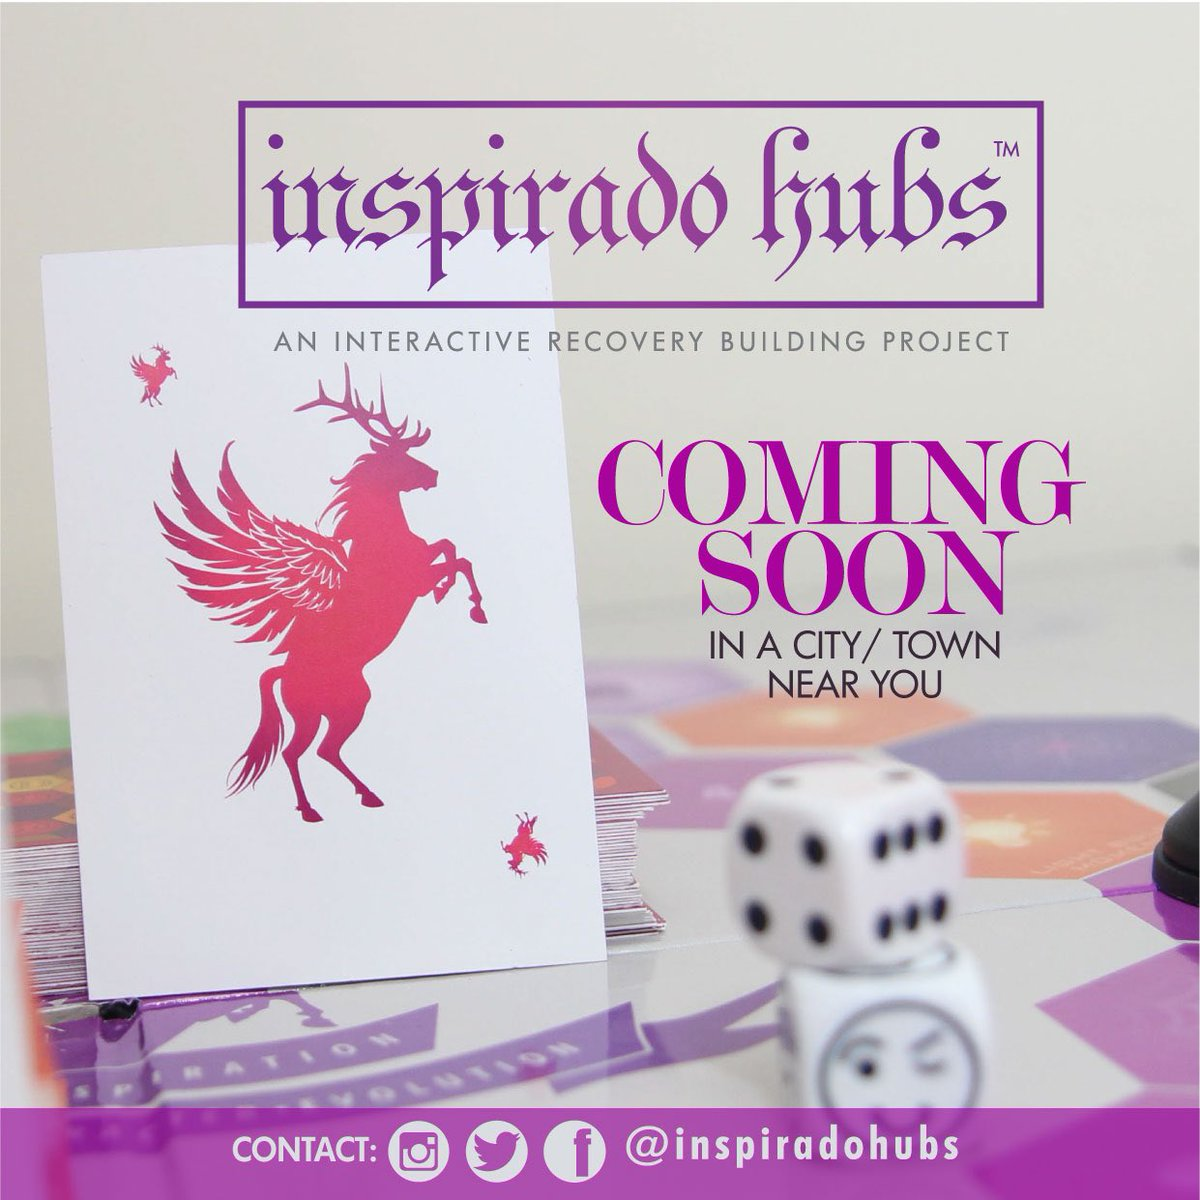 Coming to #Manchester this November #InspiradoHub! Watch out for dates and times. Limited seats available. #recovery #boardgames<br>http://pic.twitter.com/ZmTnBSZ2fY